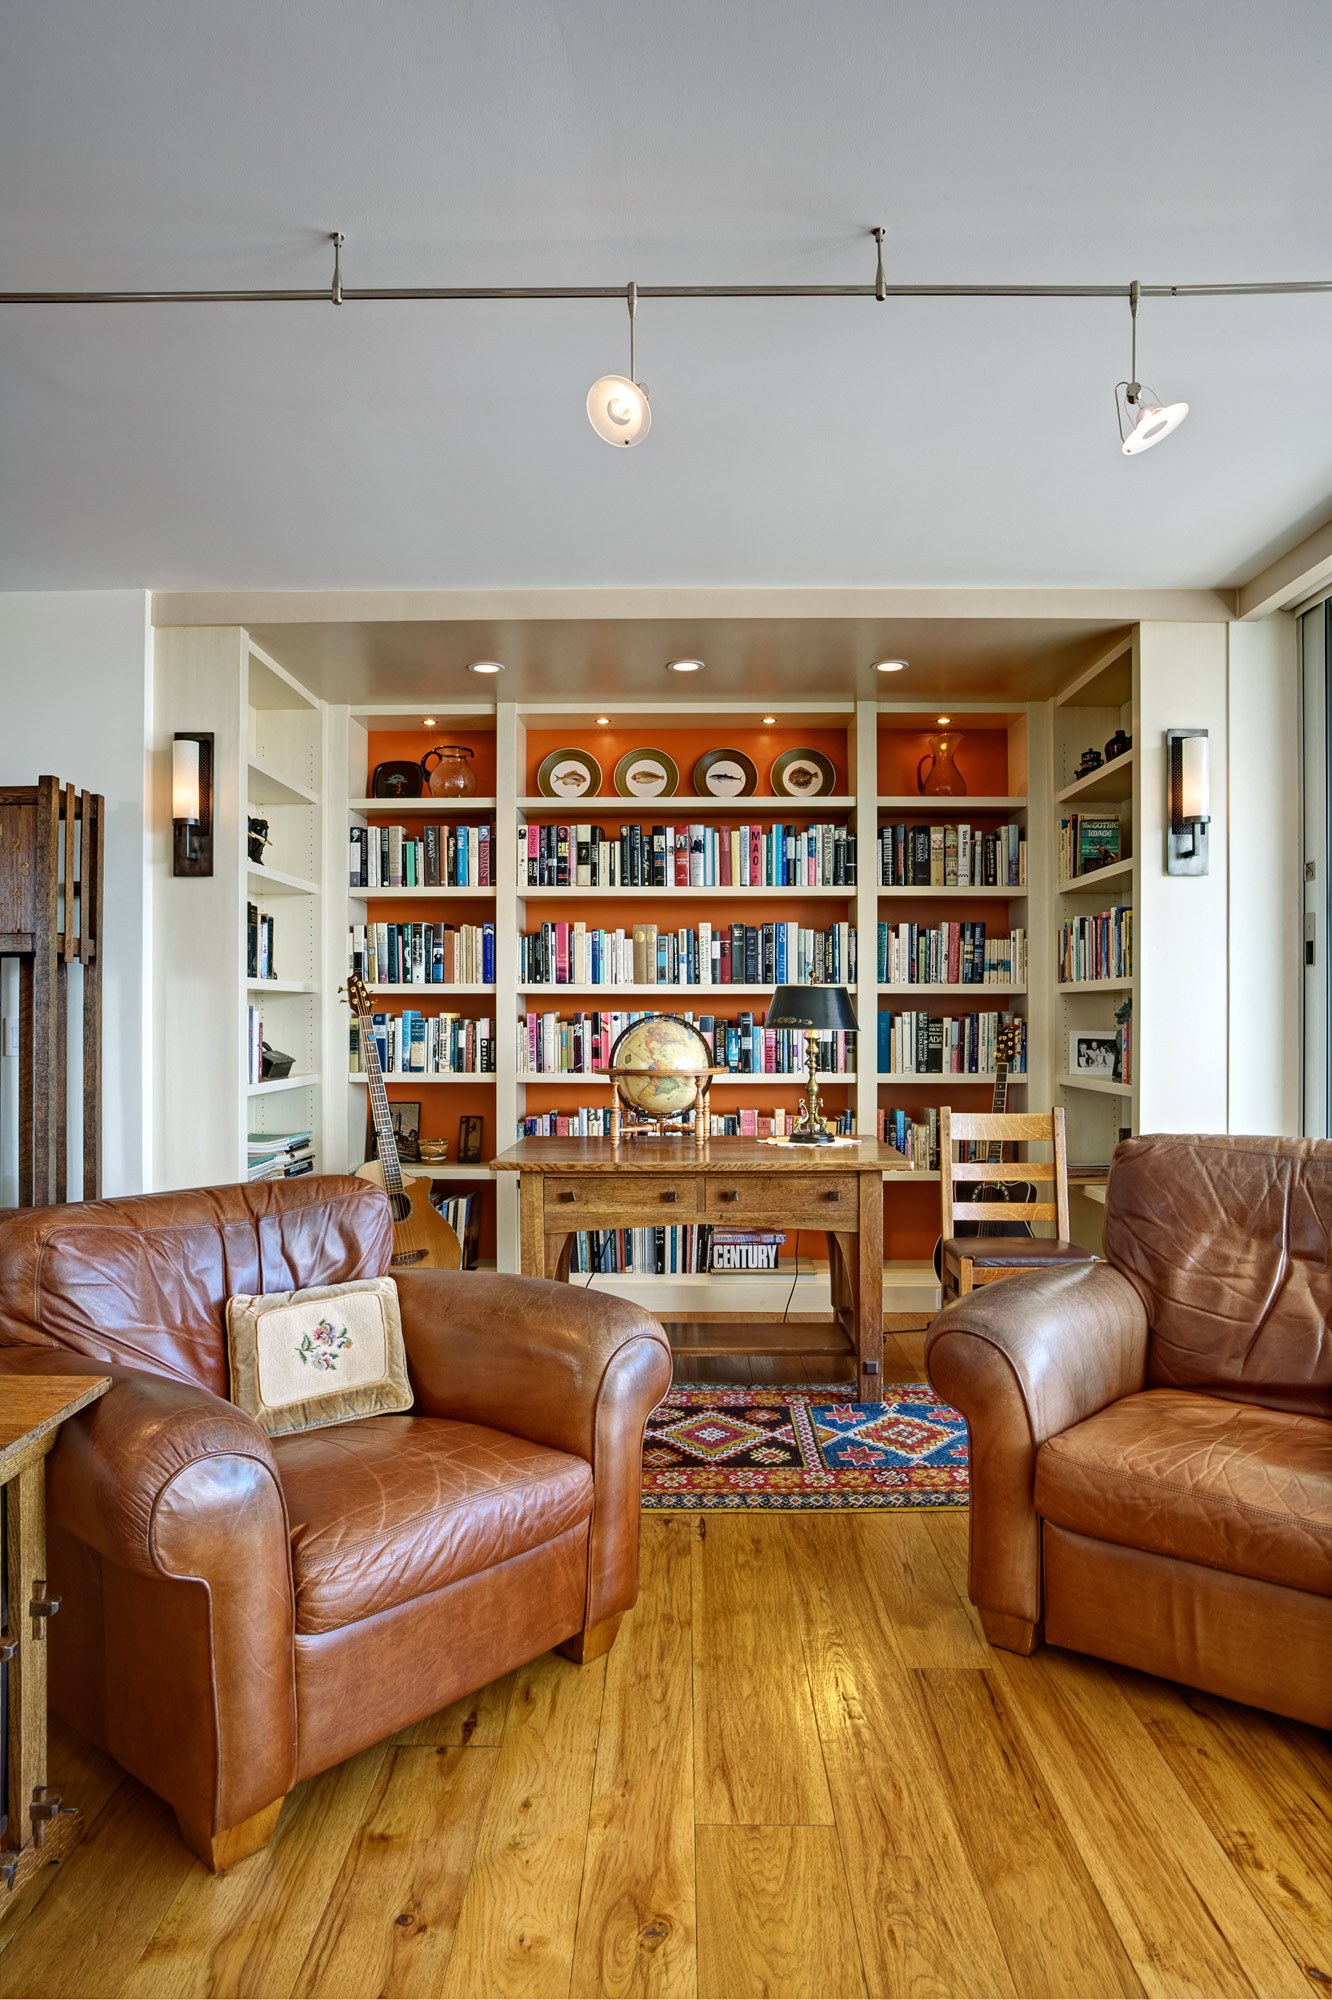 Kaplan-Architects-high-rise-interior-remodeled-library.jpg